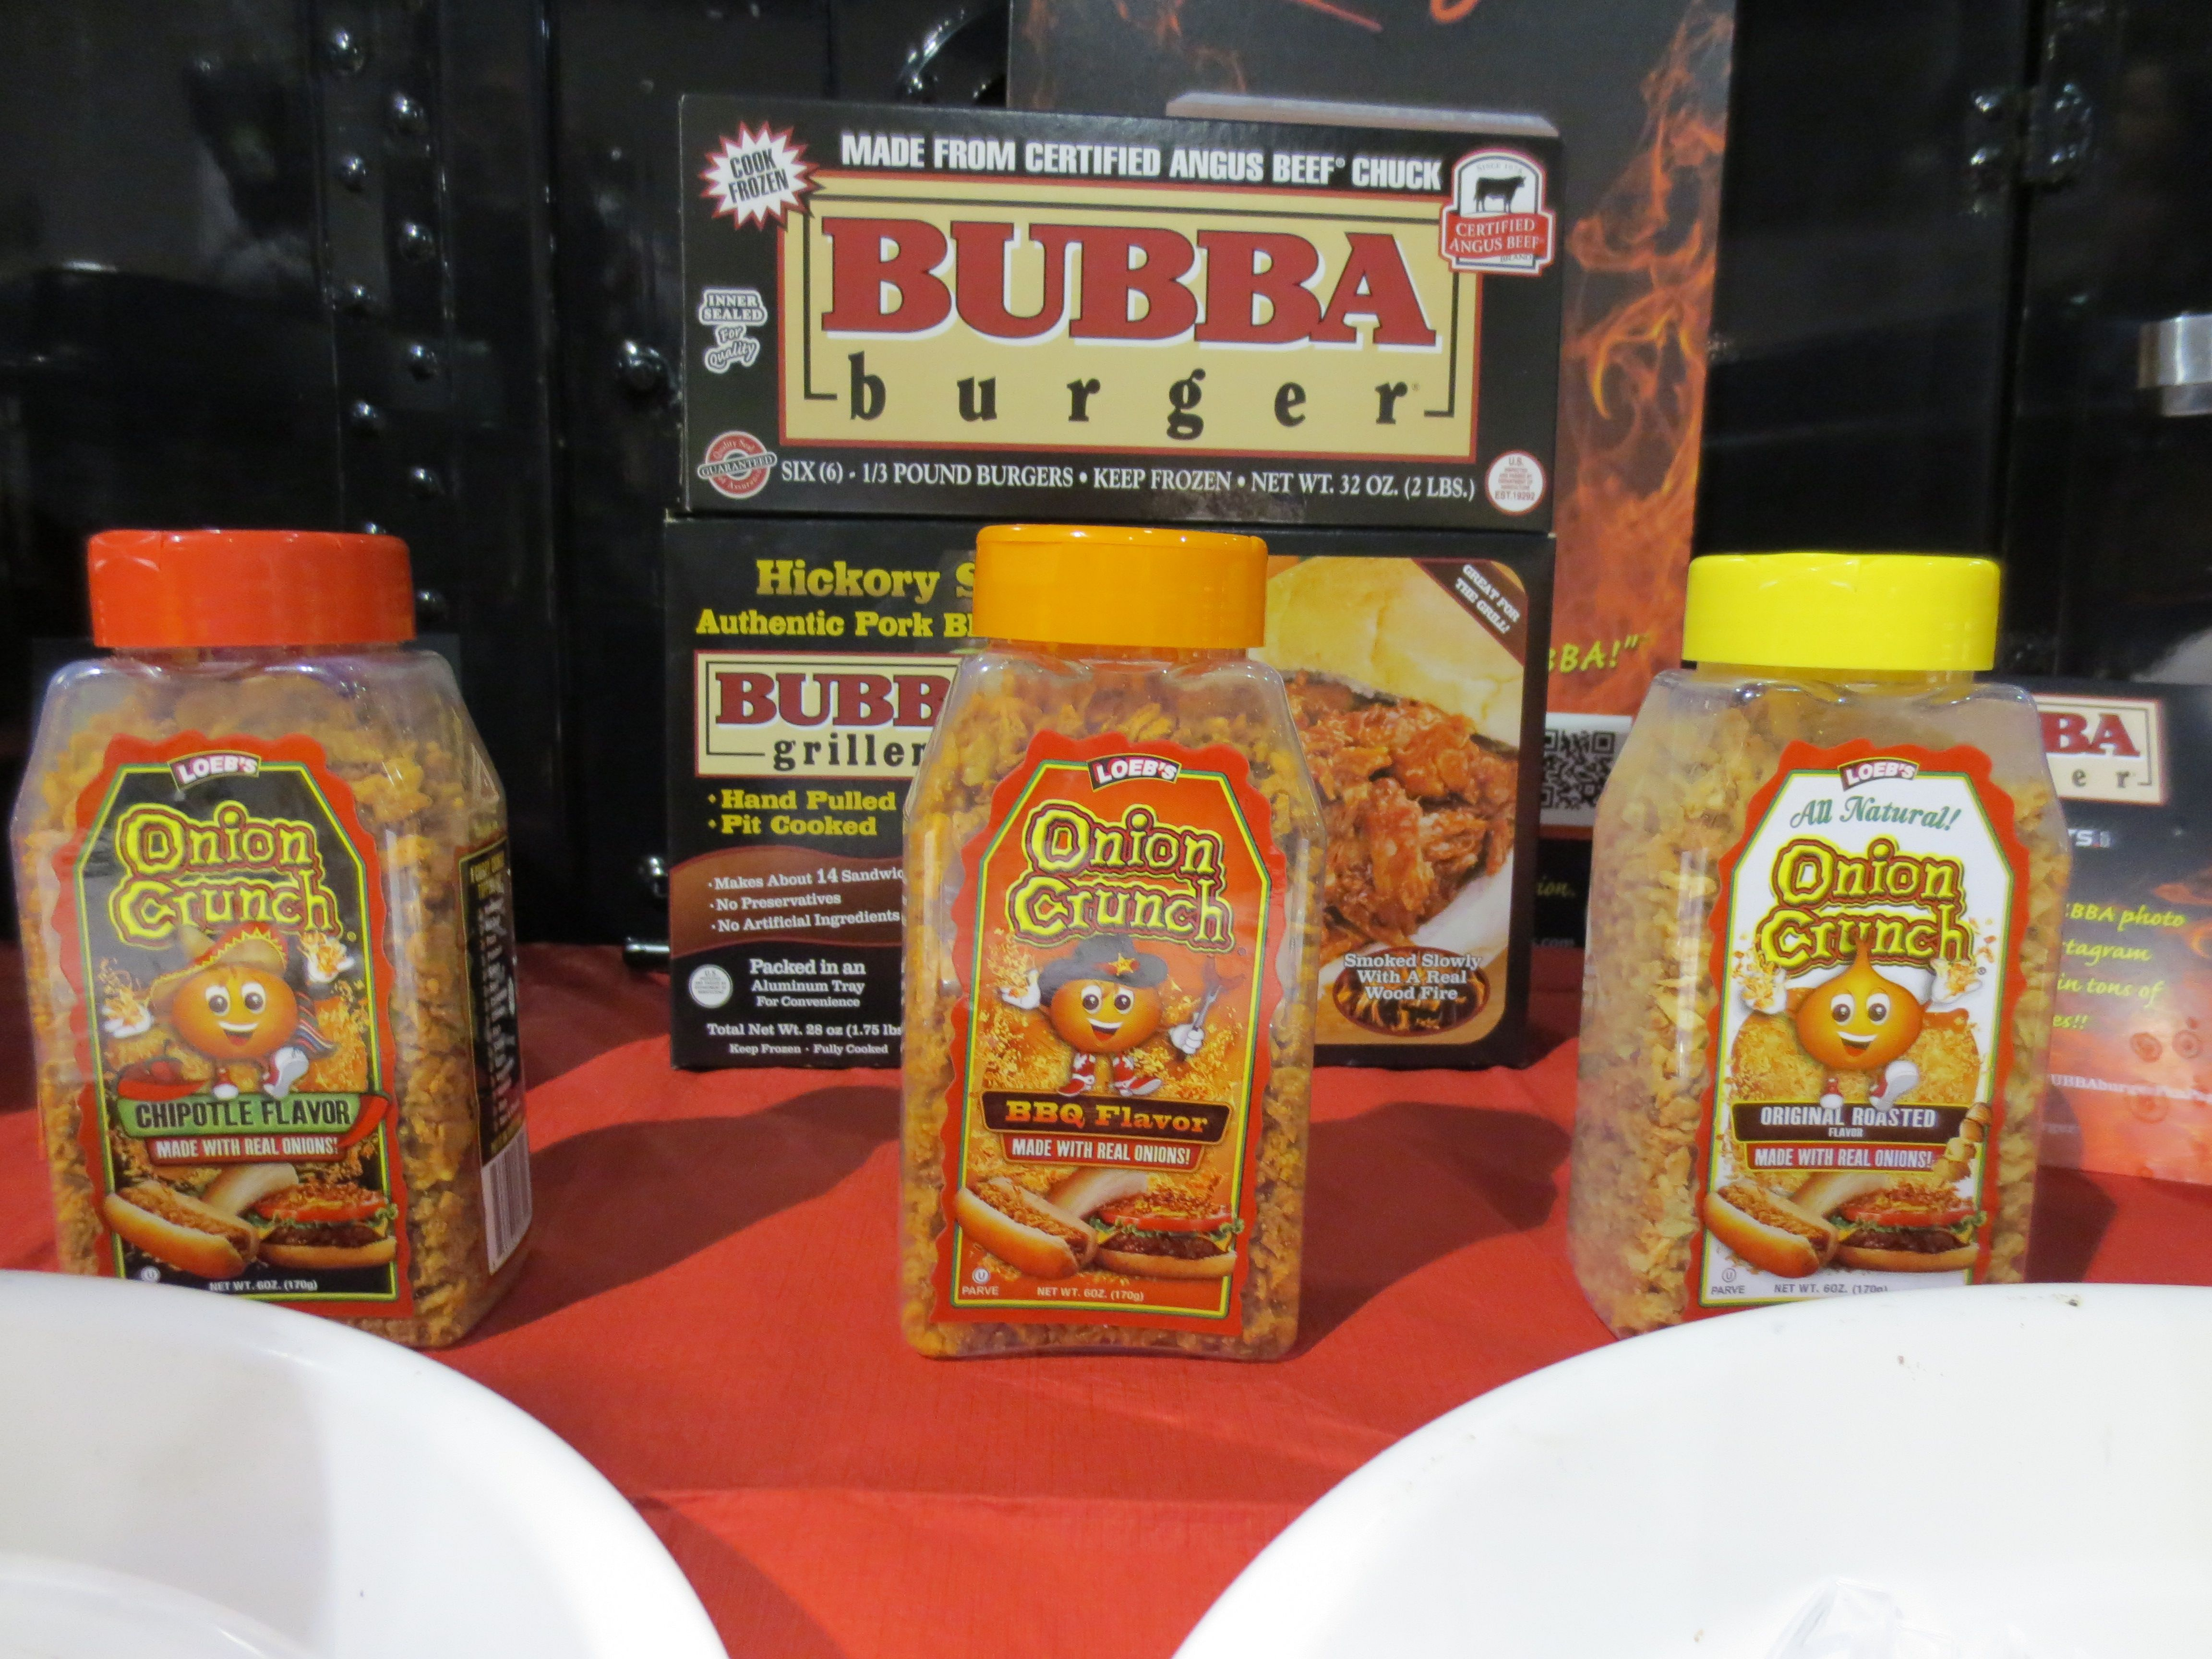 BUBBA Burgers and Onion Crunch